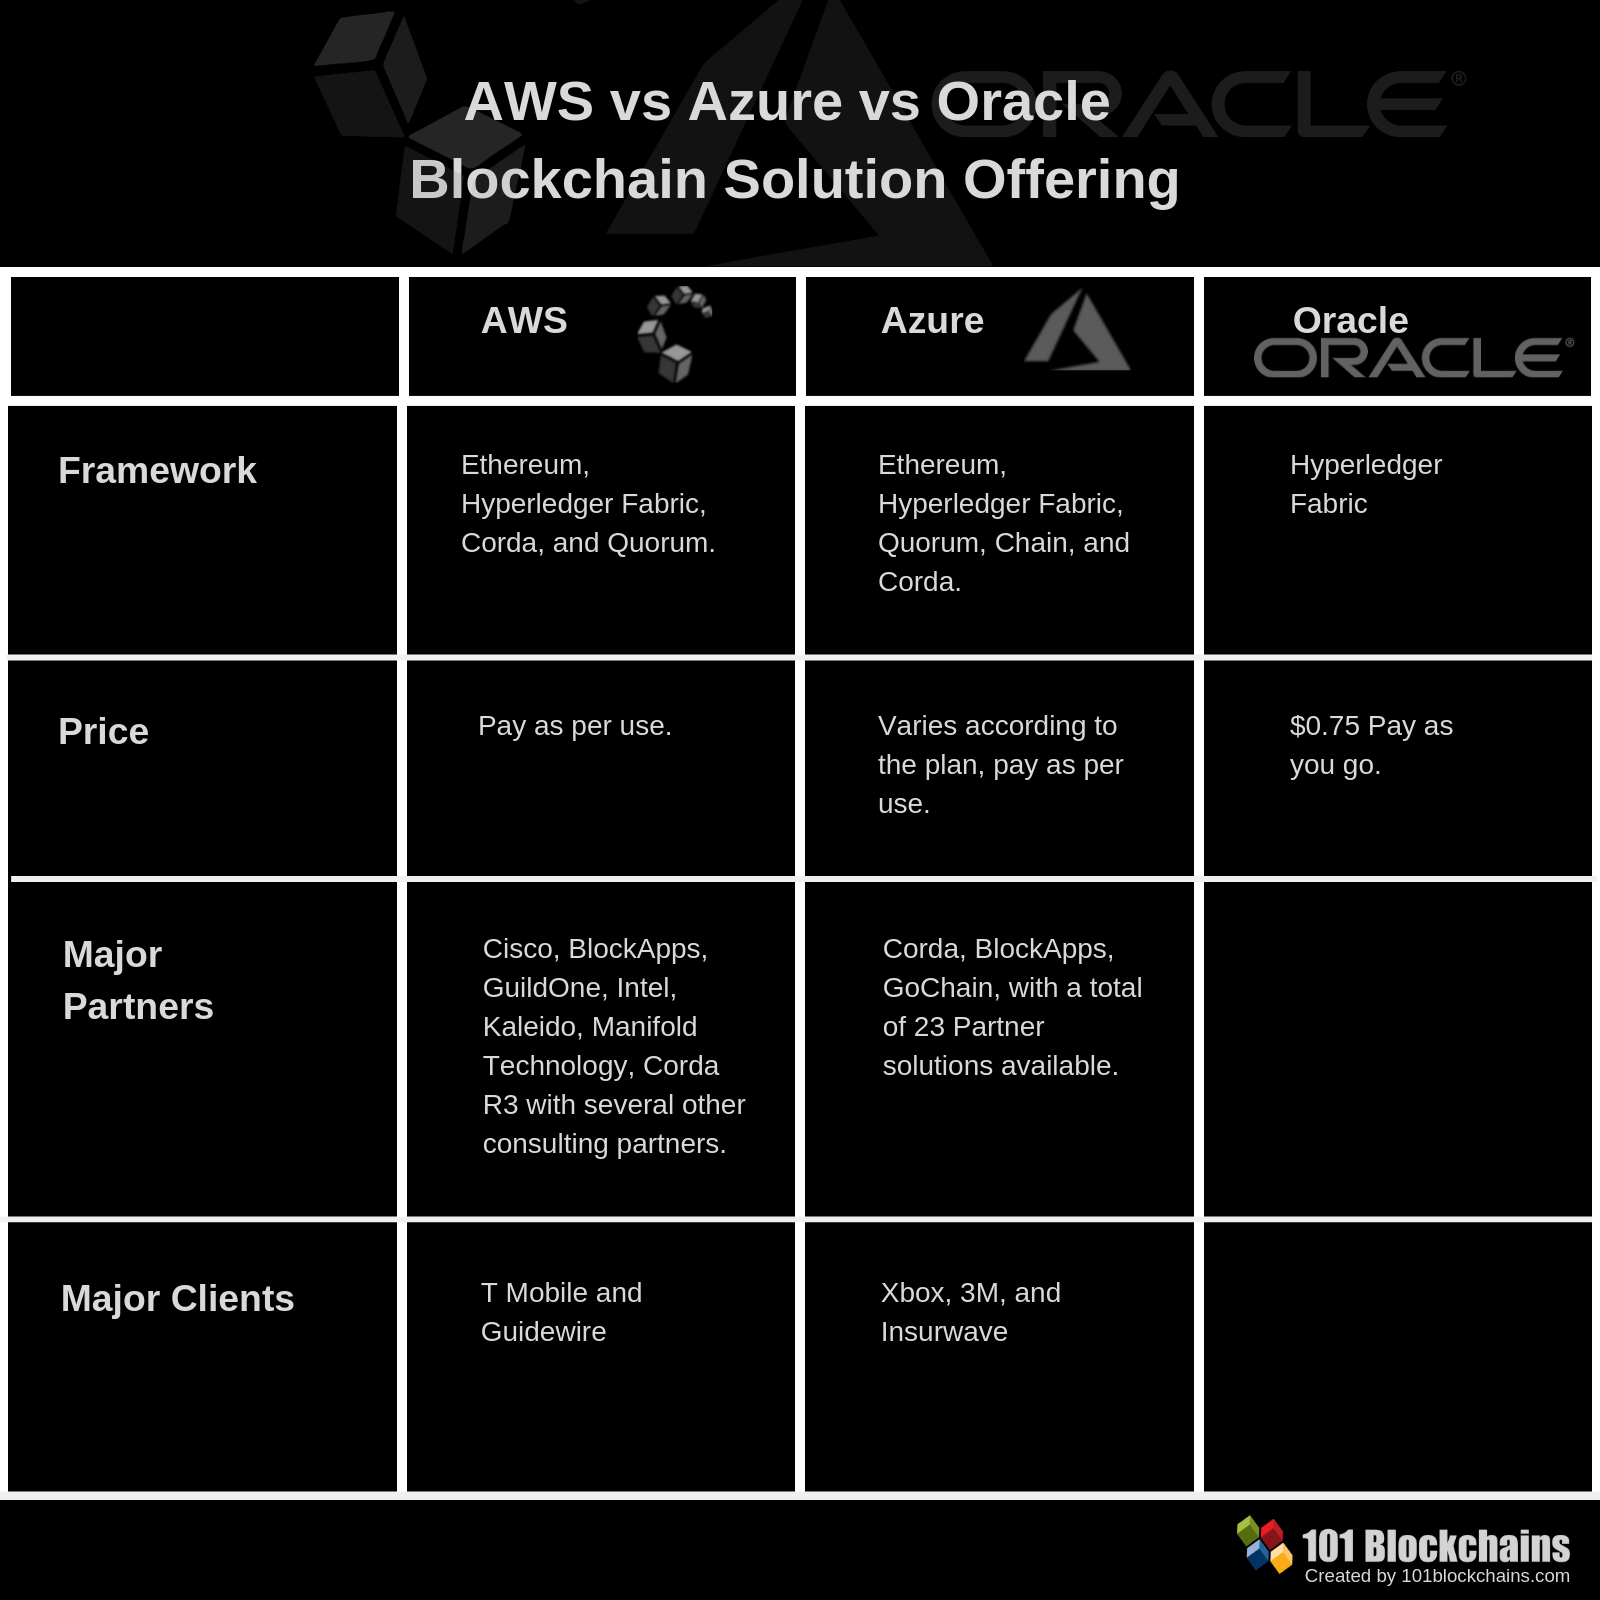 AWS vs AZURE vs Oracle Blockchain Solution Offering: Comparison